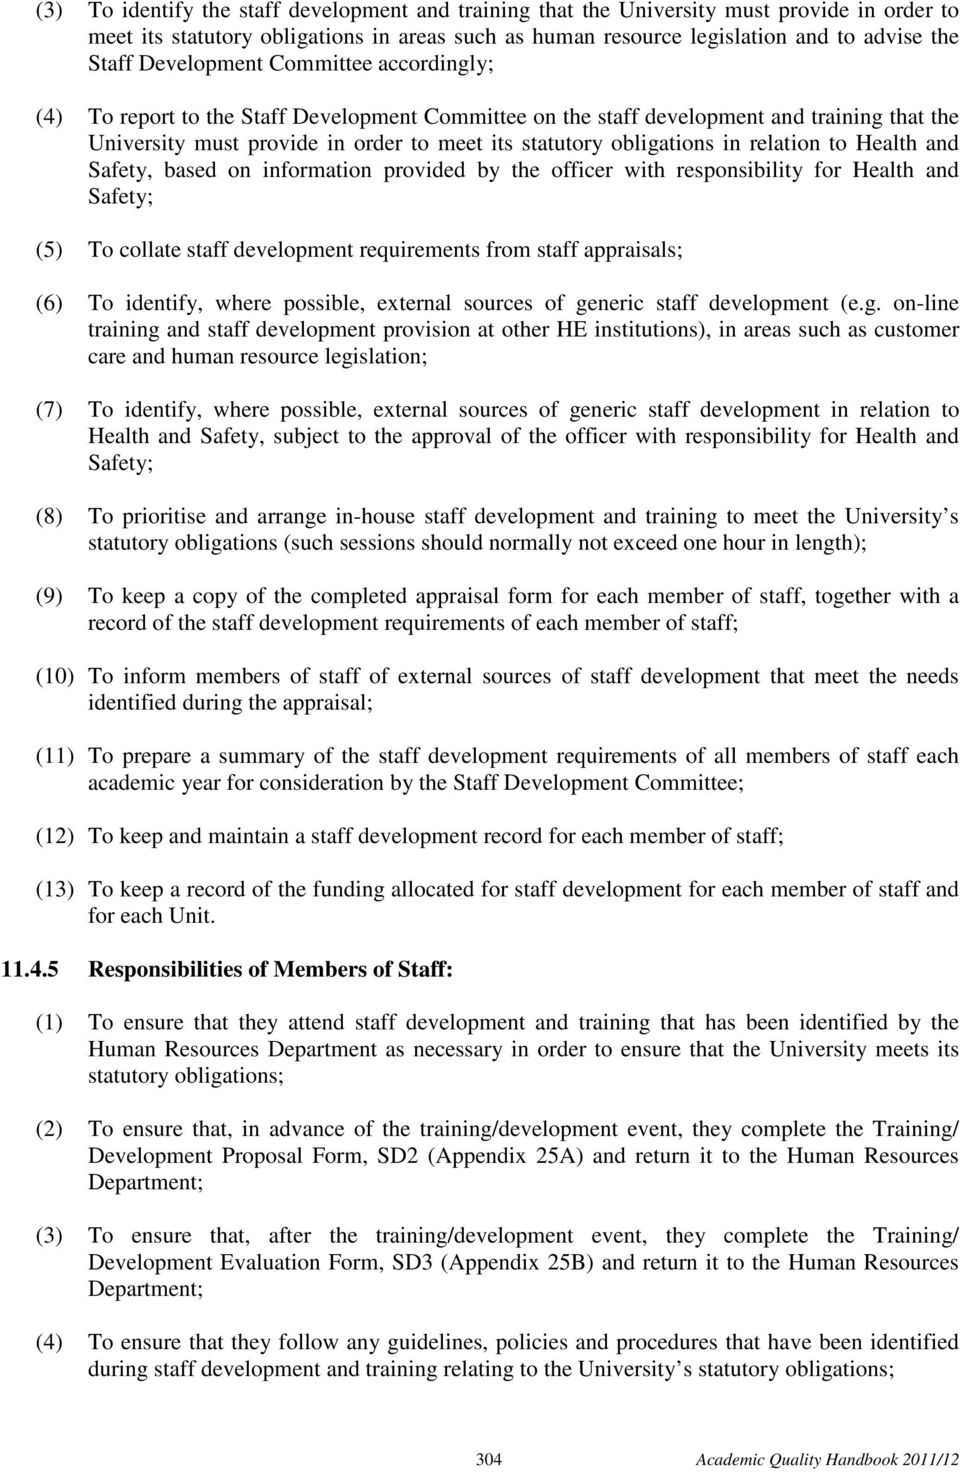 in relation to Health and Safety, based on information provided by the officer with responsibility for Health and Safety; (5) To collate staff development requirements from staff appraisals; (6) To